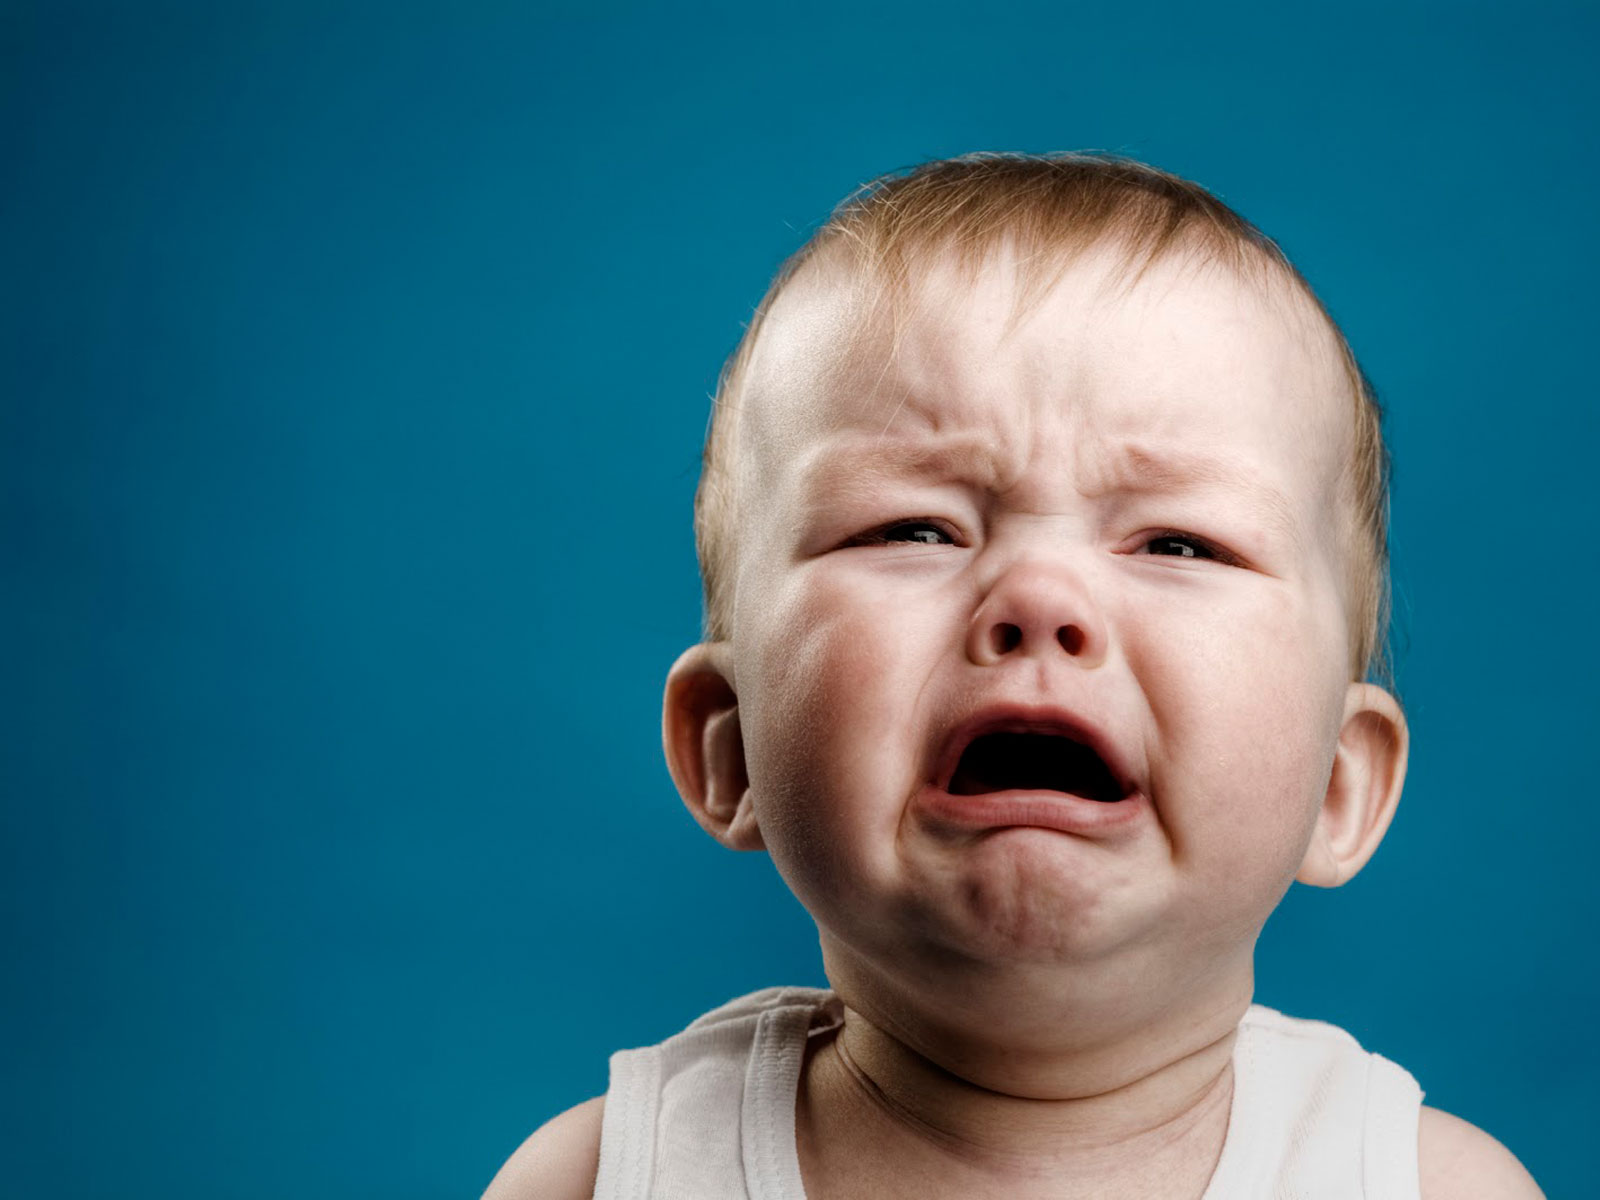 Top 29 Wallpapers Of Sad And Crying Babies In Hd-7496